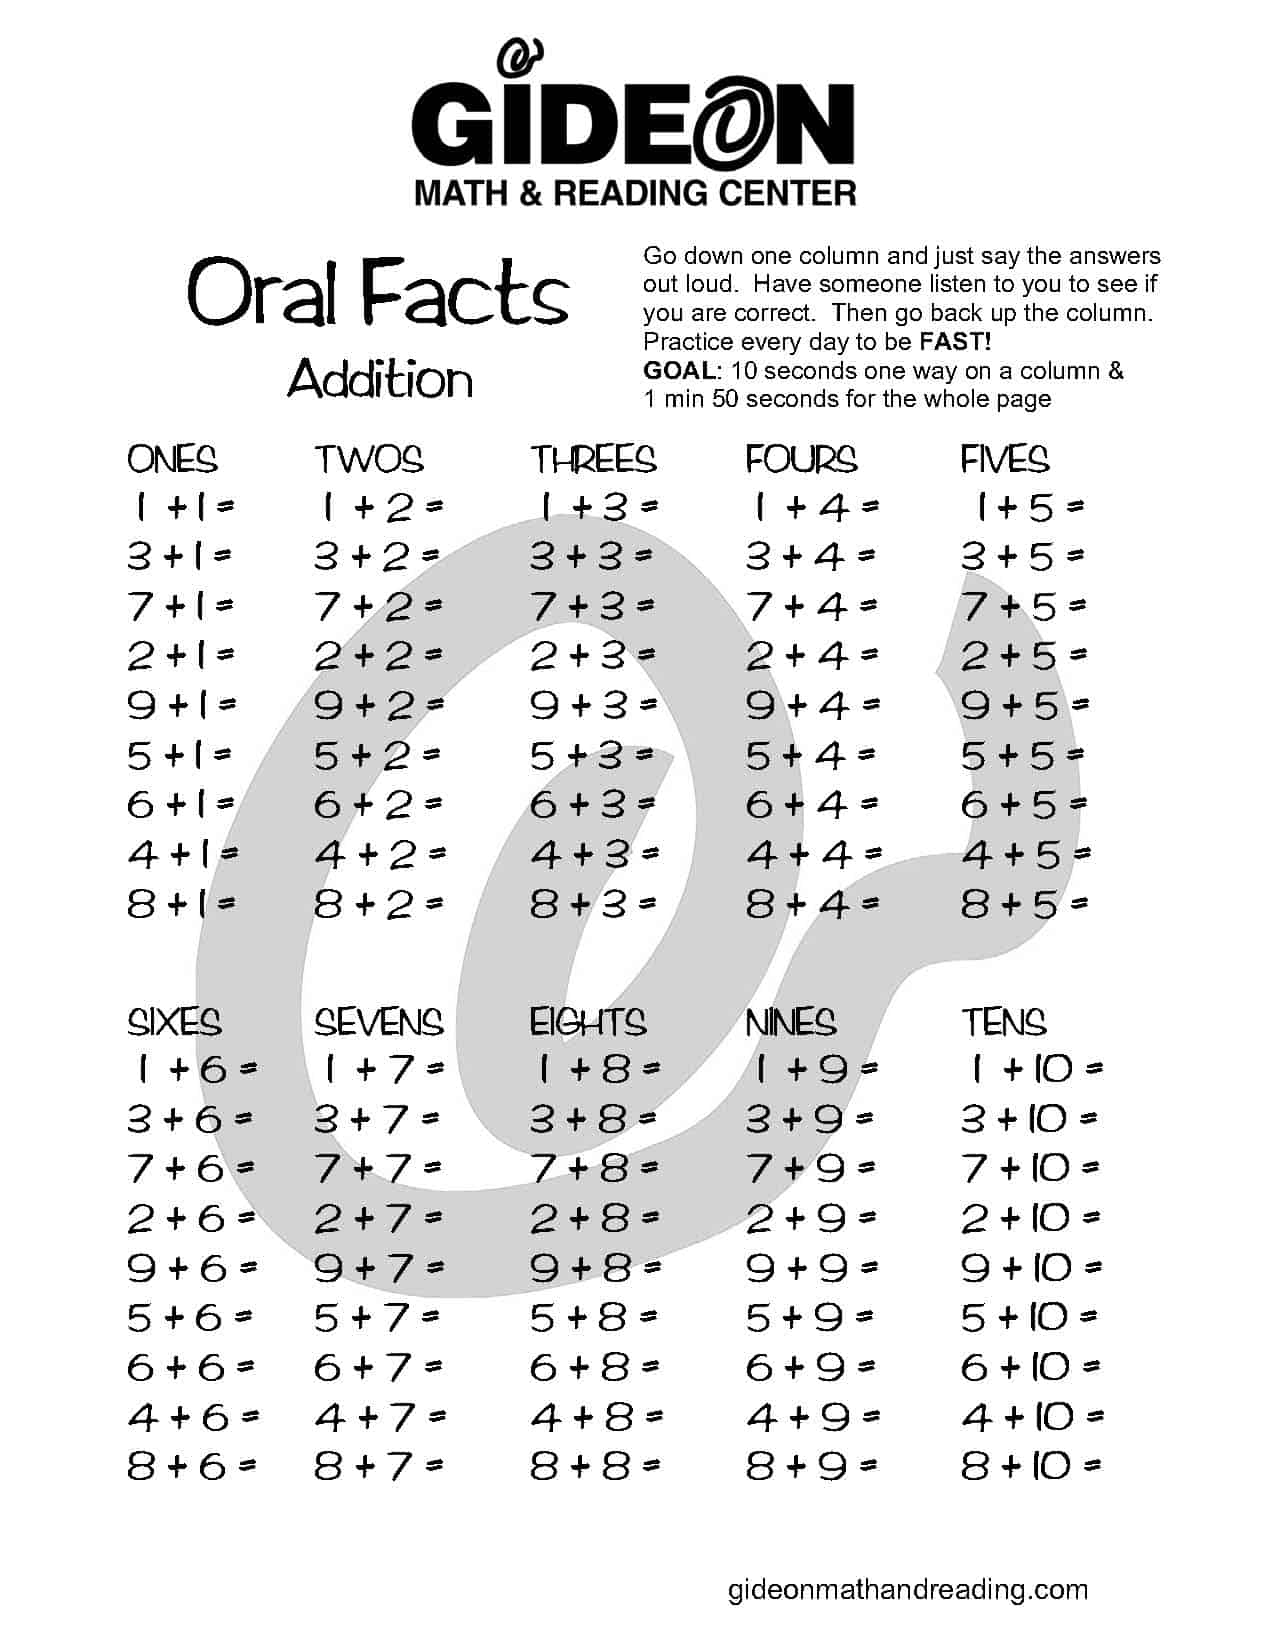 Addition Oral Facts